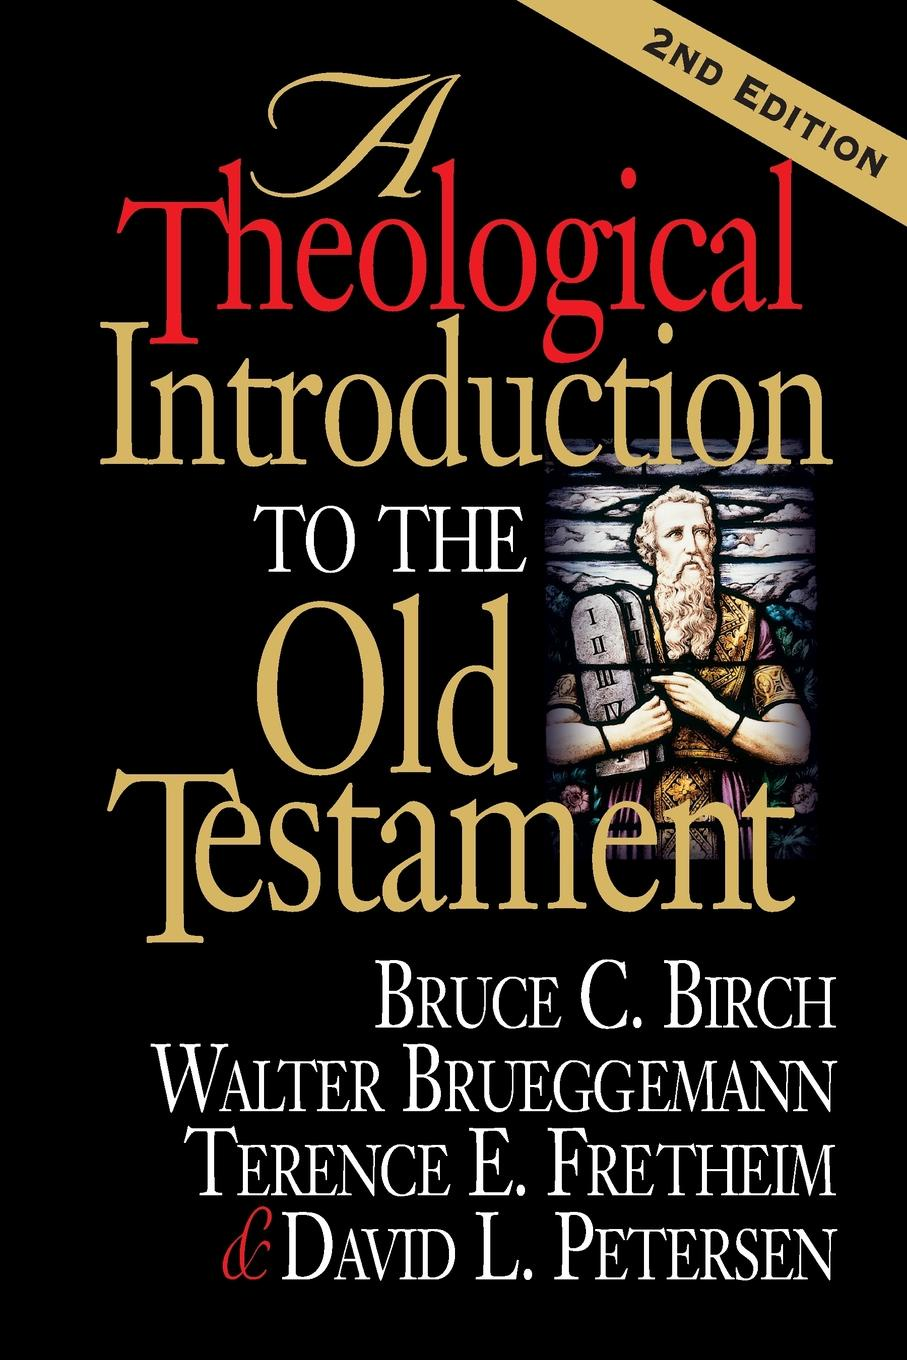 Bruce C. Birch, Terence E. Fretheim, David L. Petersen A Theological Introduction to the Old Testament judith e medeiros the third testament